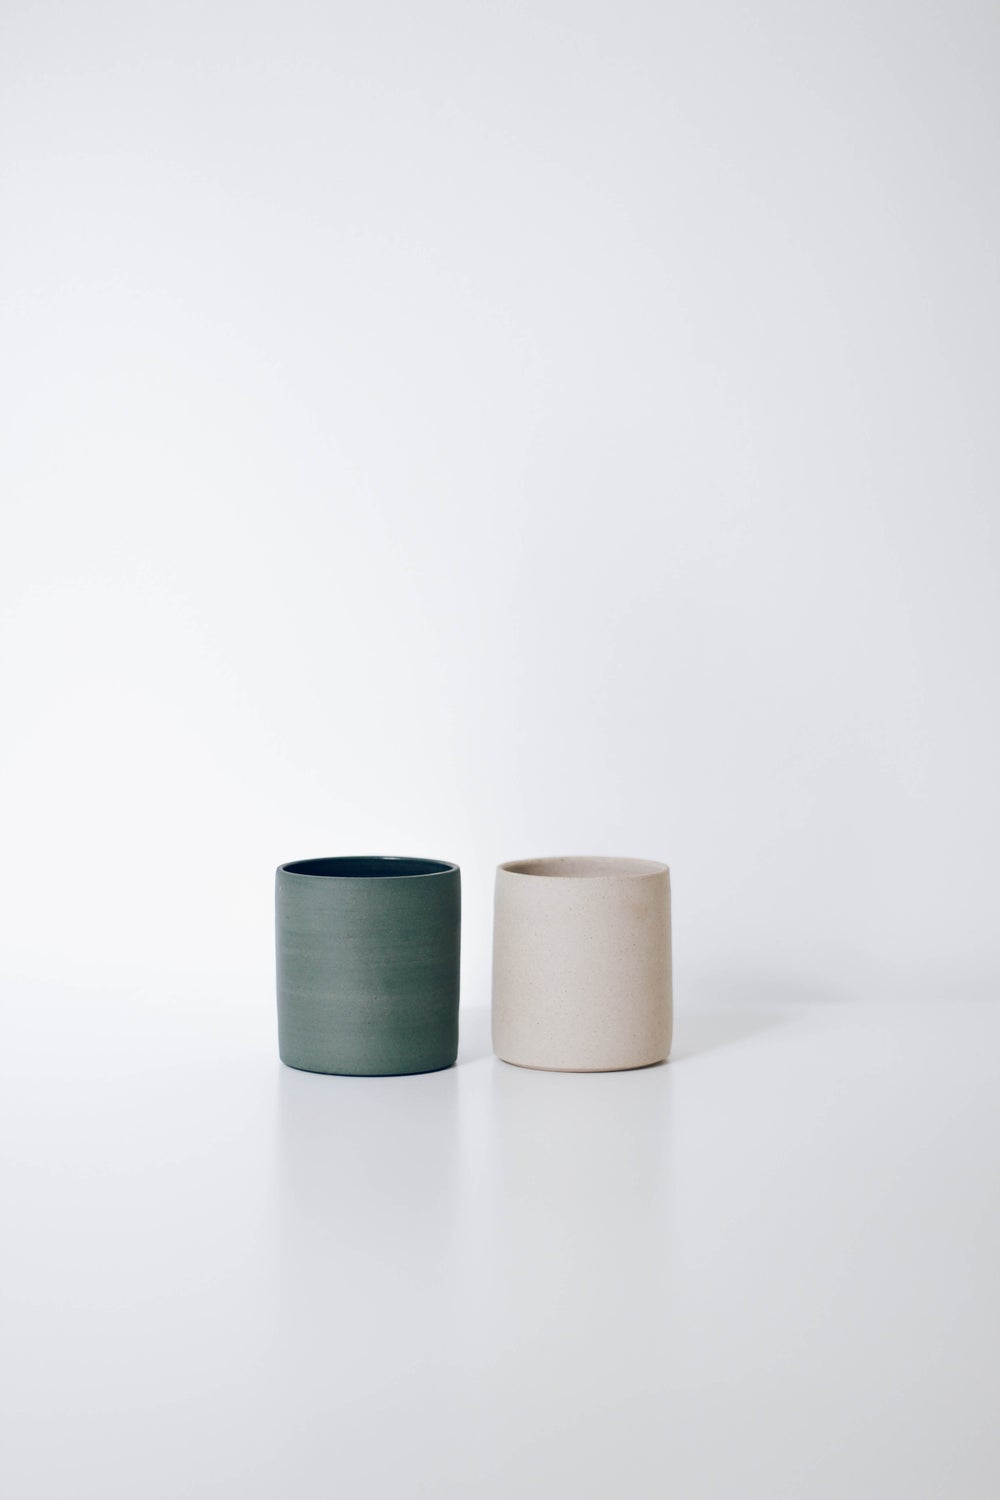 Image of Teal + White Tumbler Set